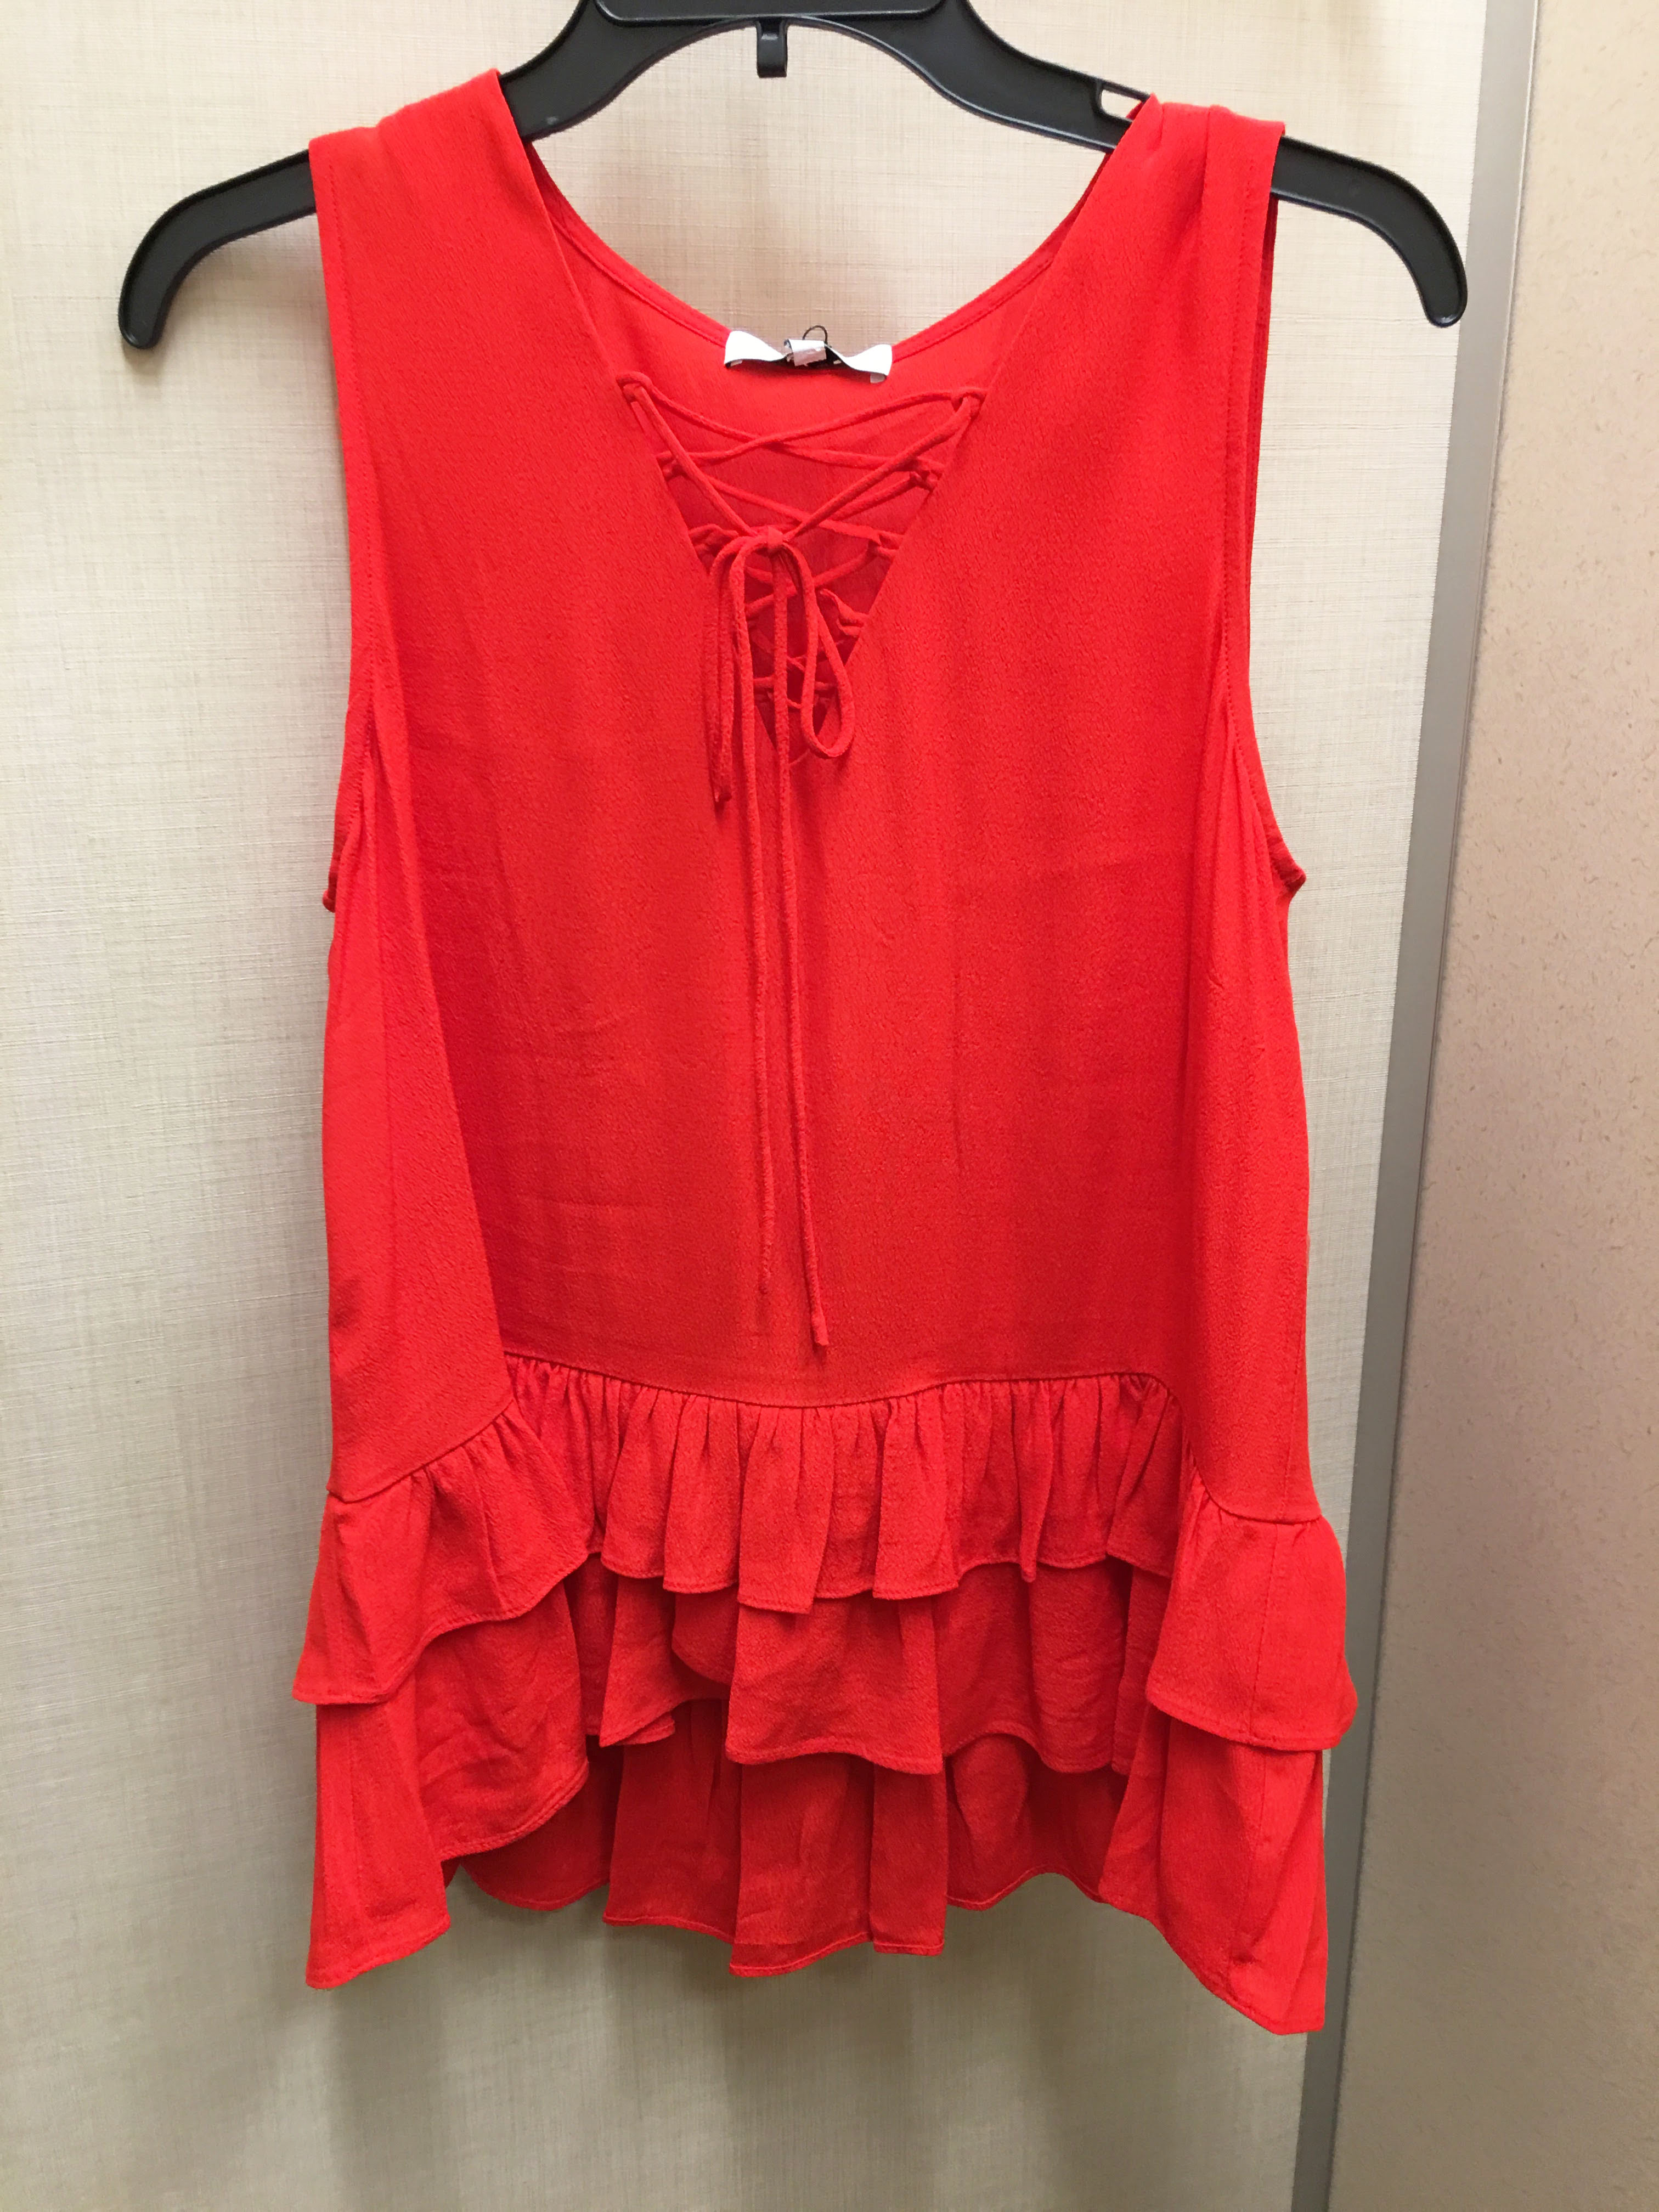 red-ruffle-top